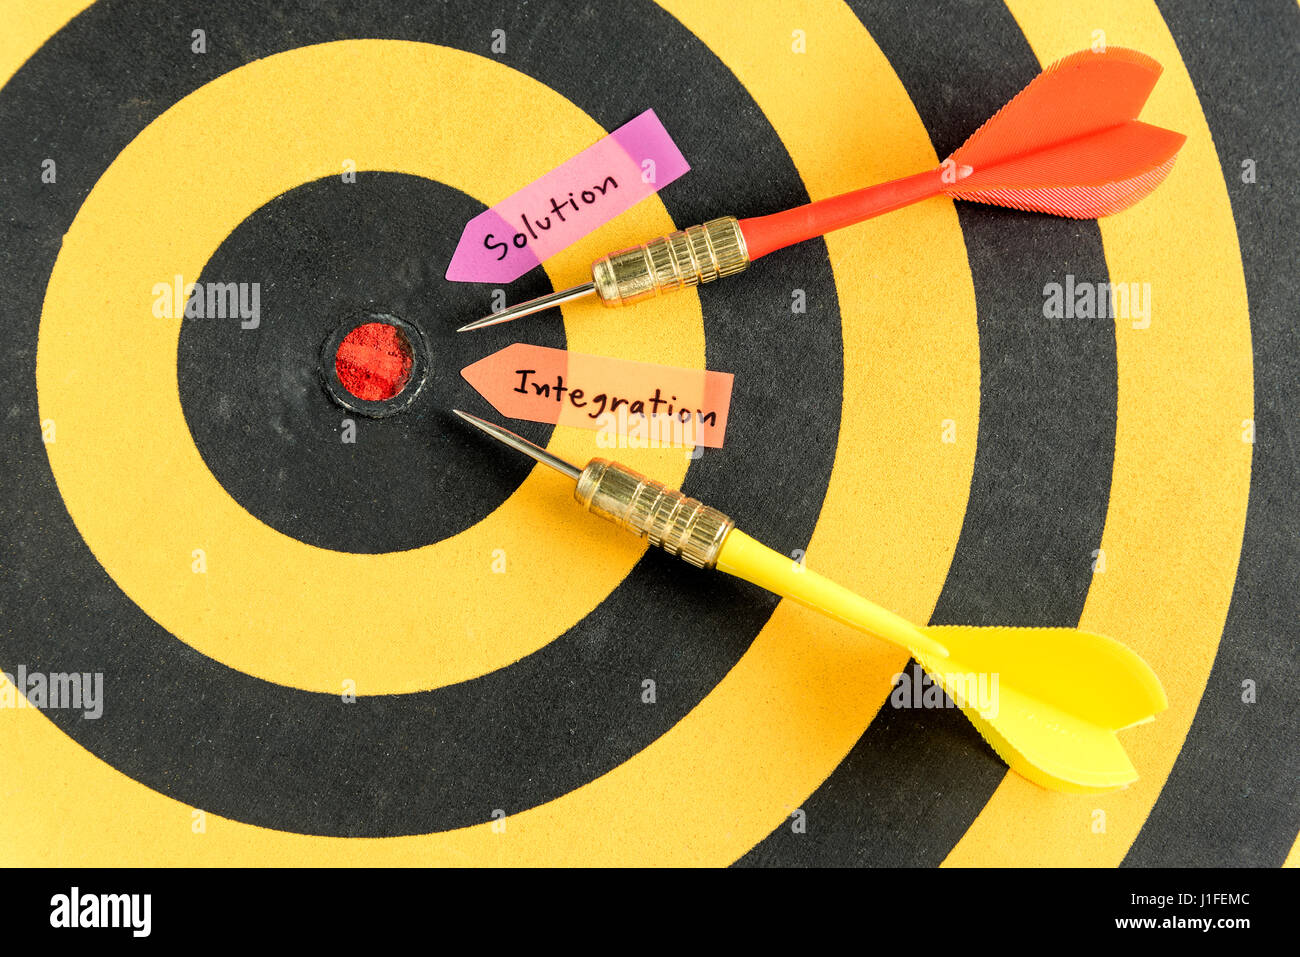 Handwriting solution integration with dart target near bullseye over dartboard background, abstract data concept - Stock Image